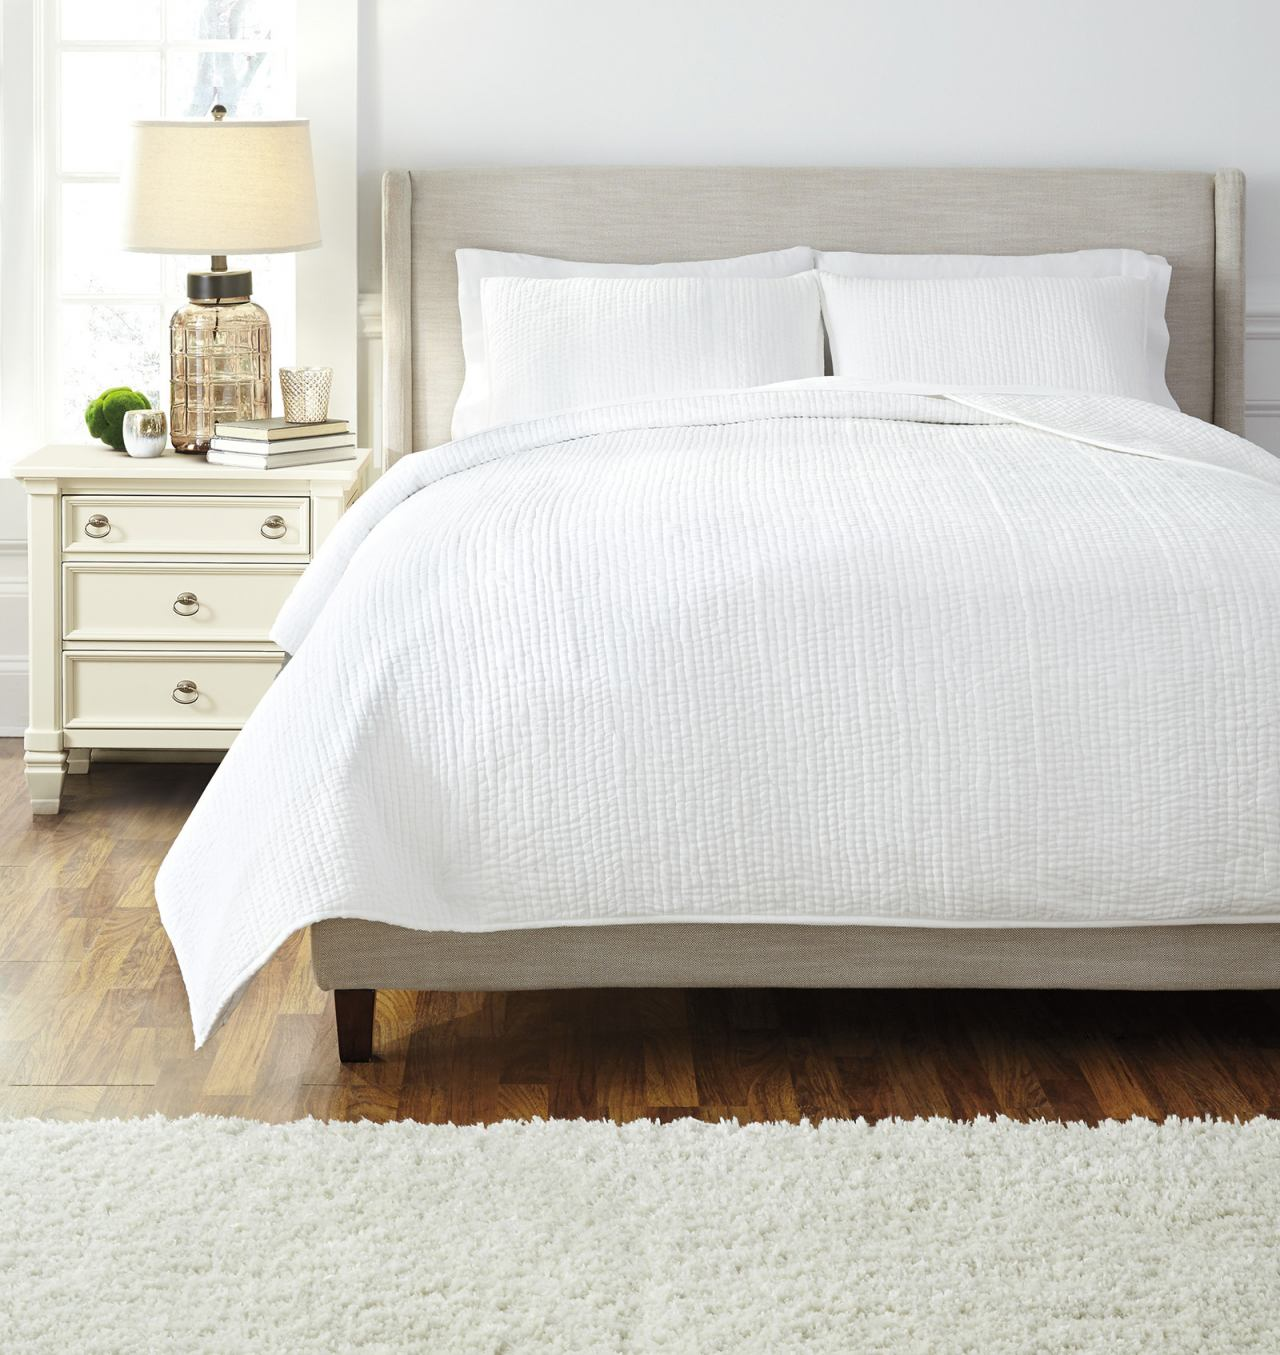 Stitched King Comforter Set in White Q481003K